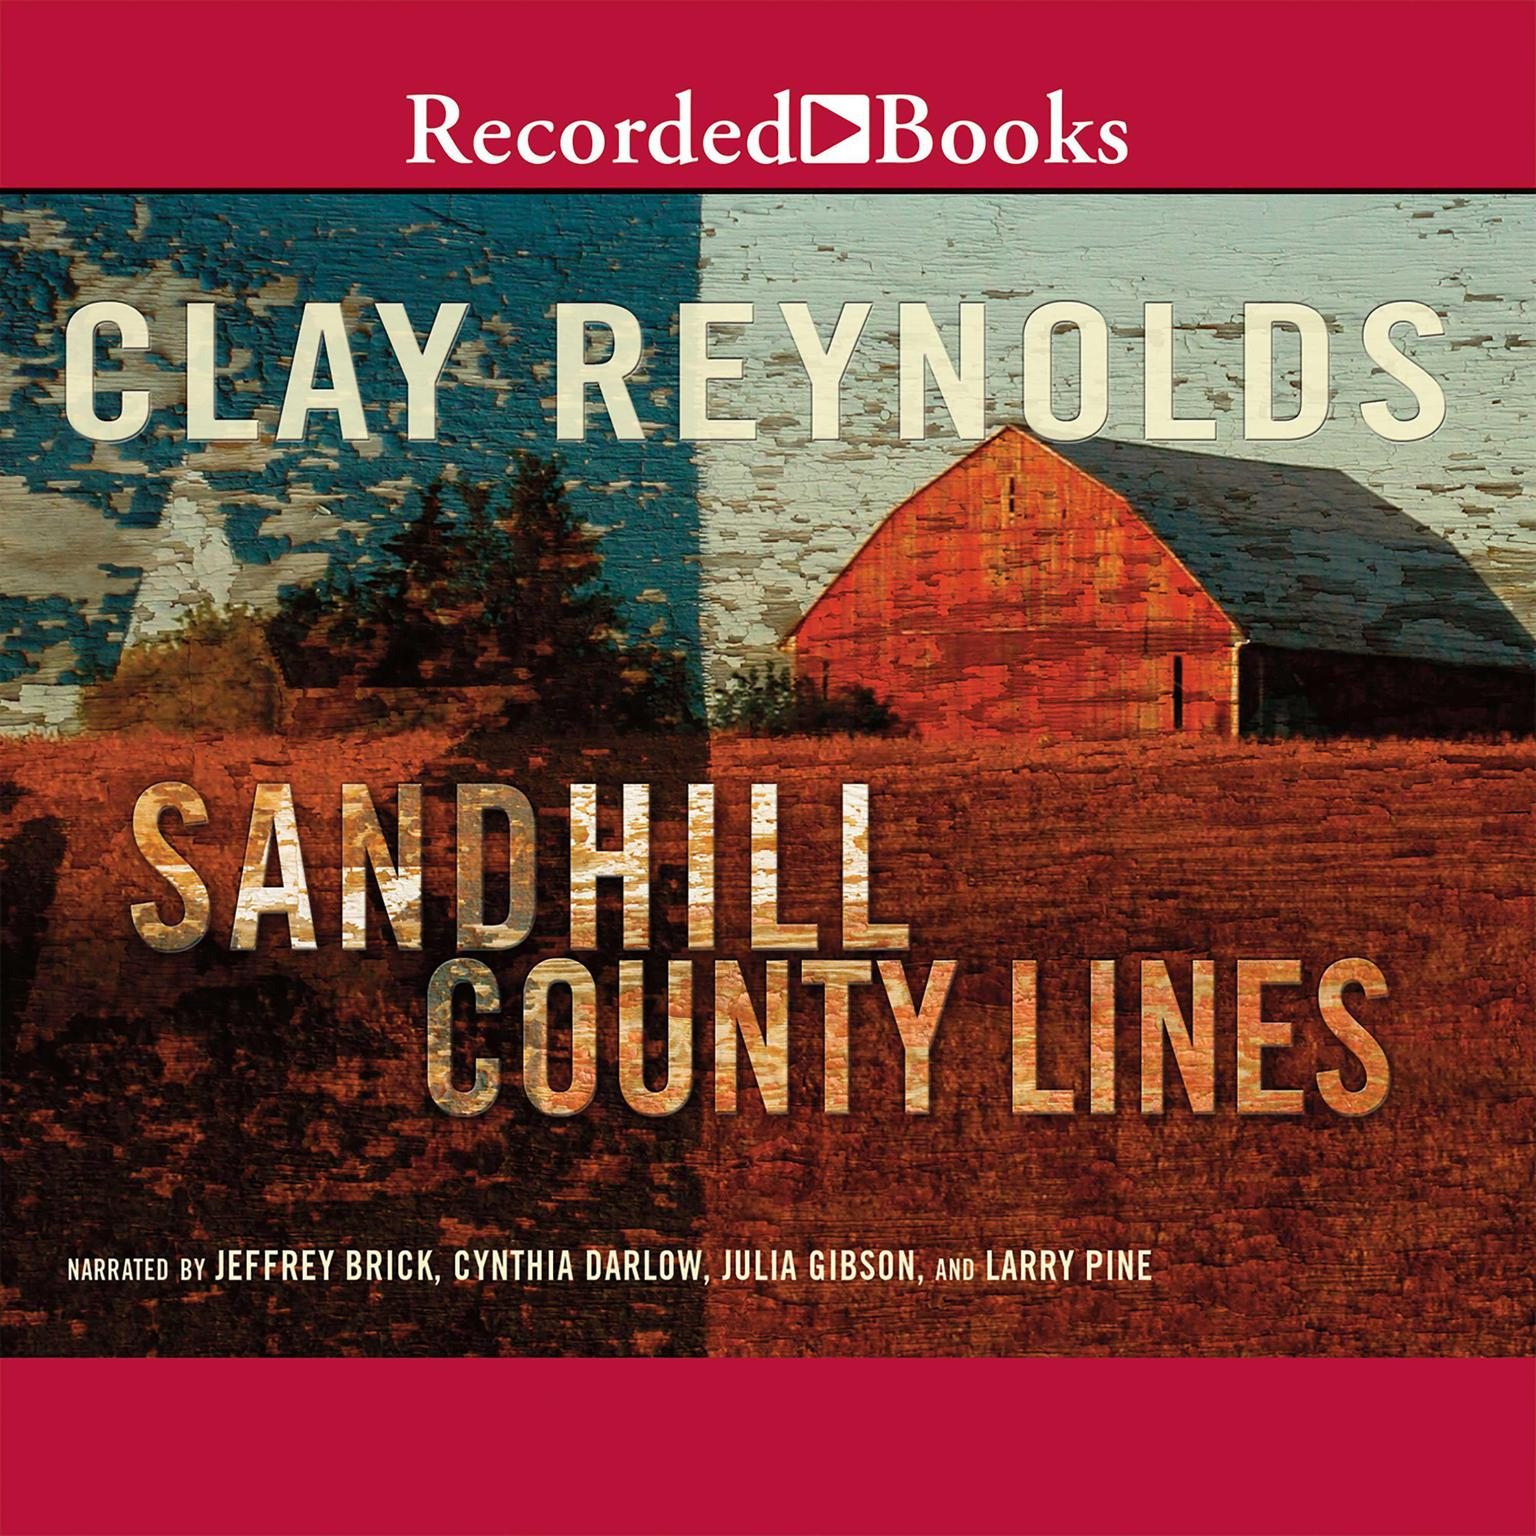 Printable Sandhill County Lines Audiobook Cover Art